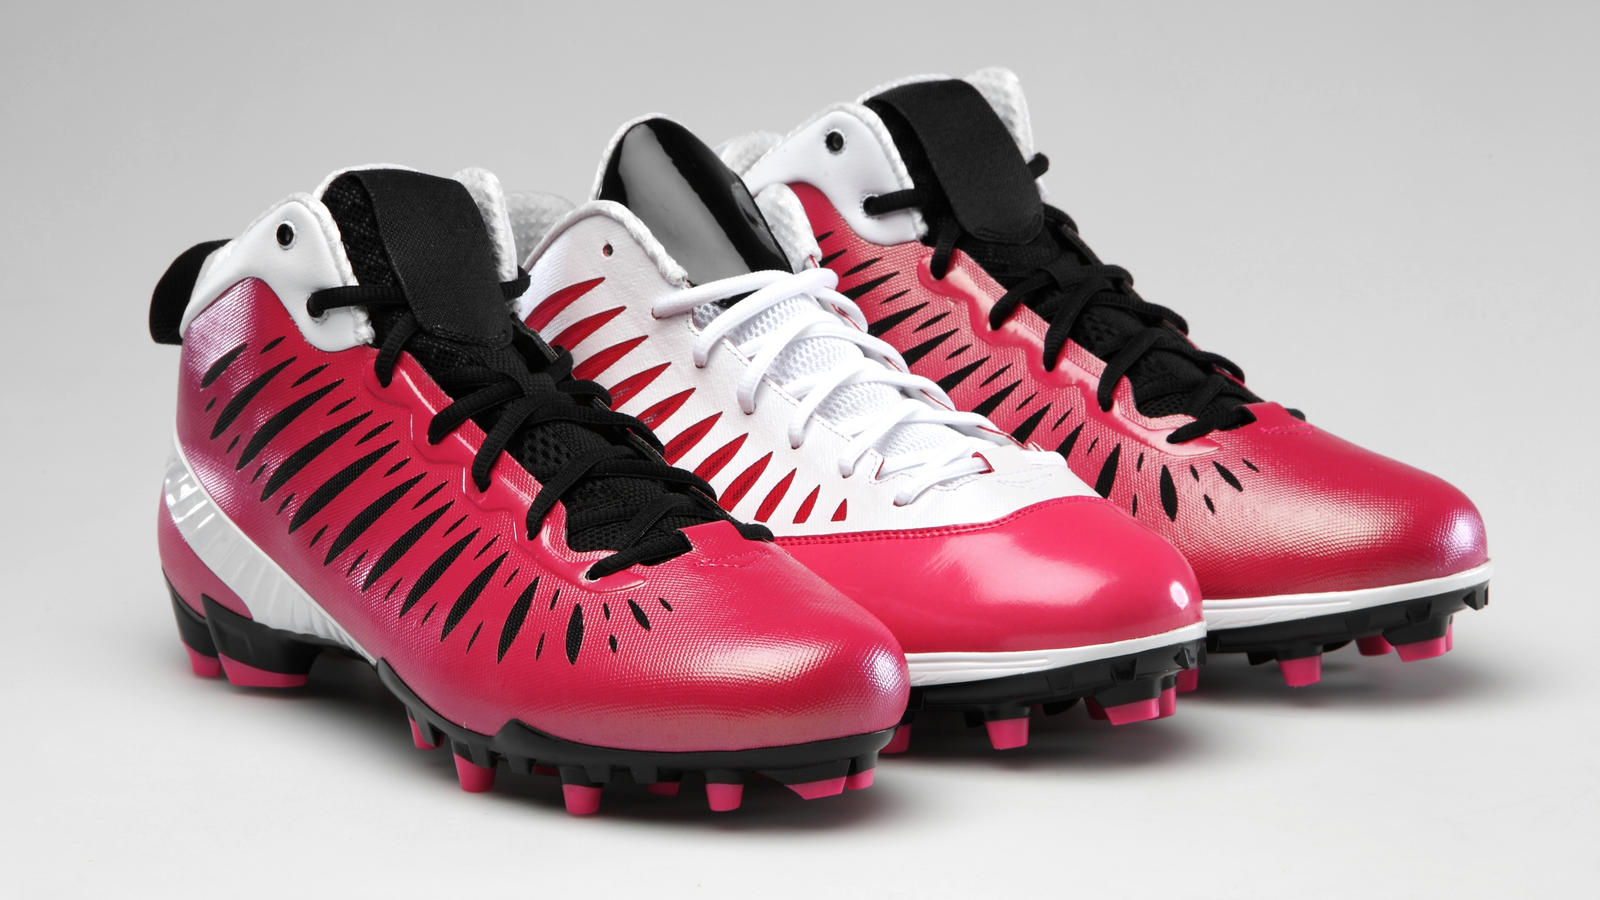 56be25742fb Team Jordan To Support Breast Cancer Awareness With Pink Cleats This ...